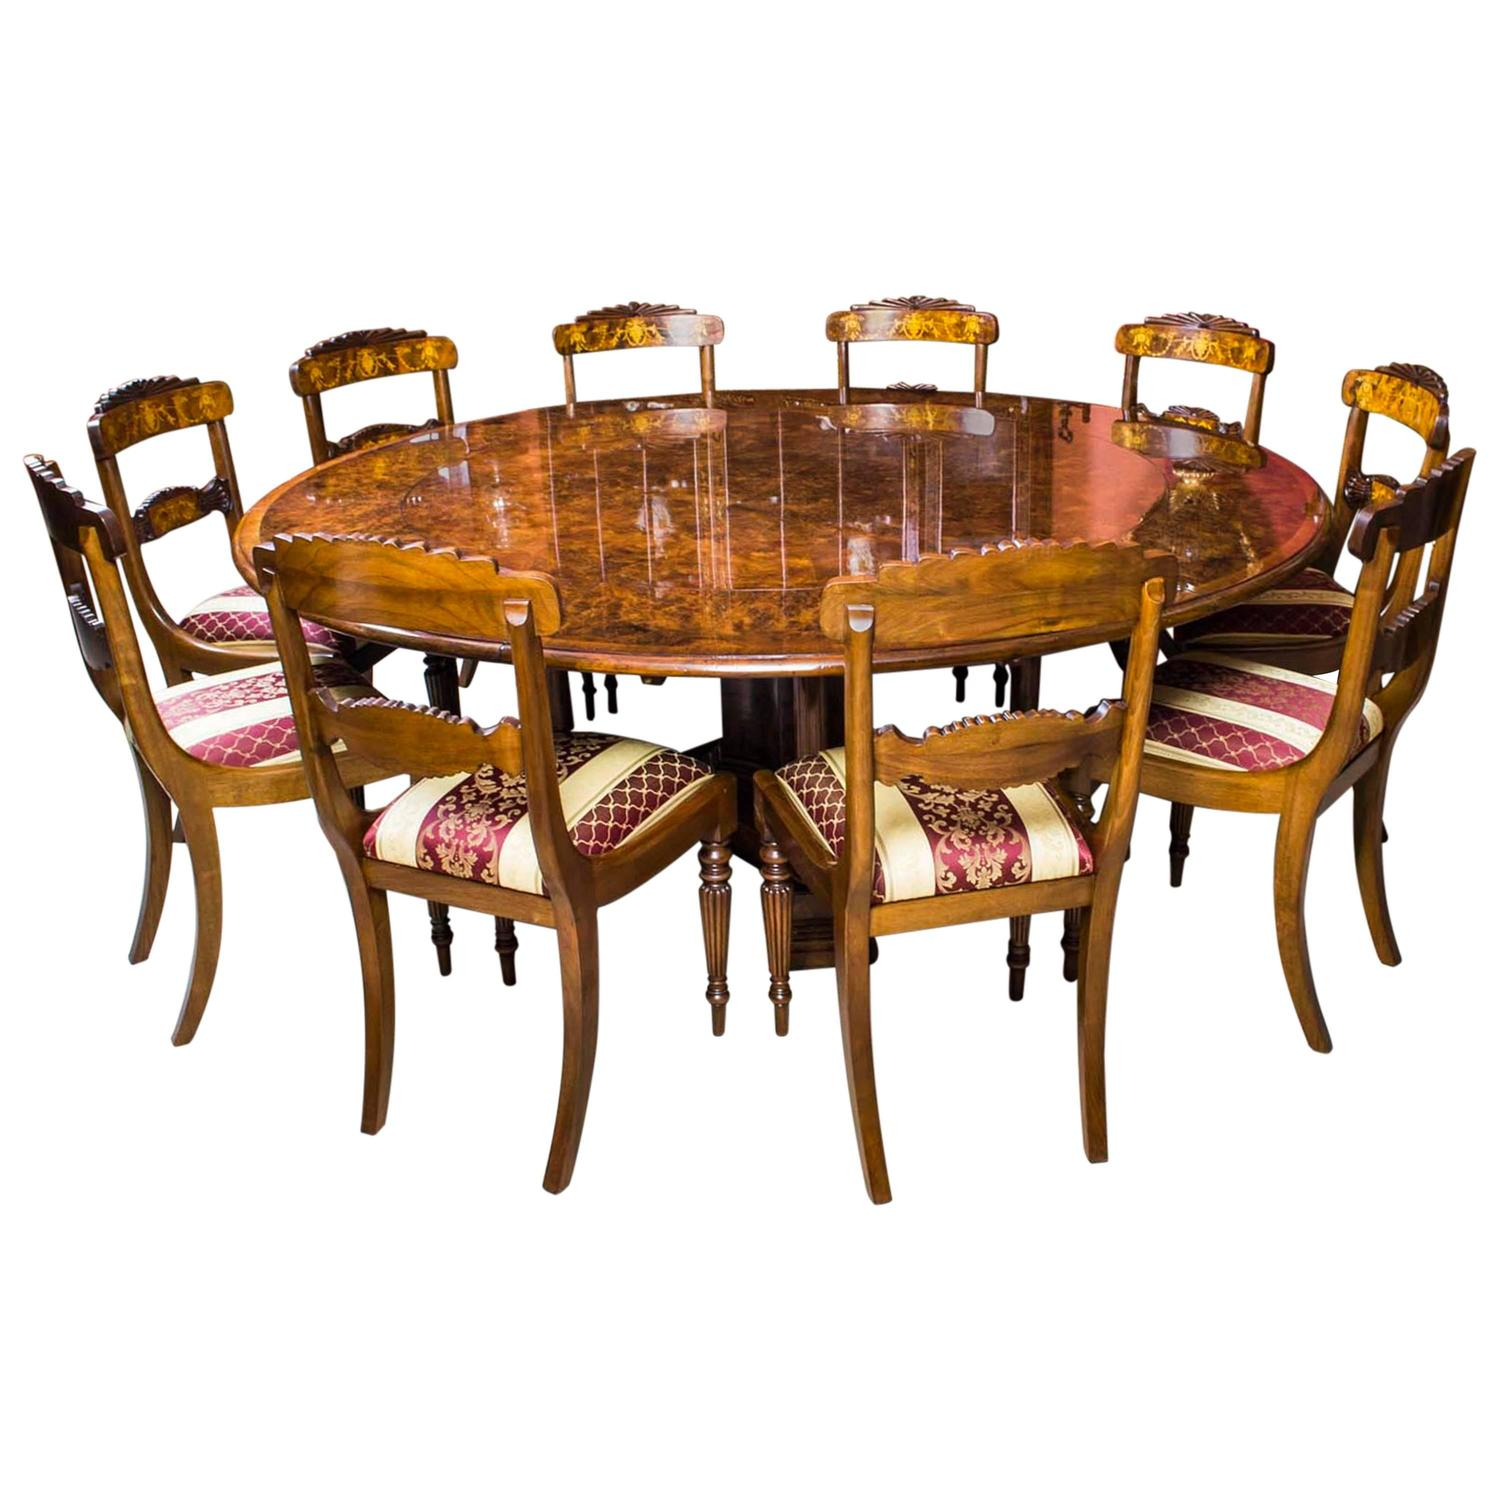 Dining Set For 10: Burr Walnut Jupe Dining Table And Ten Chairs At 1stdibs